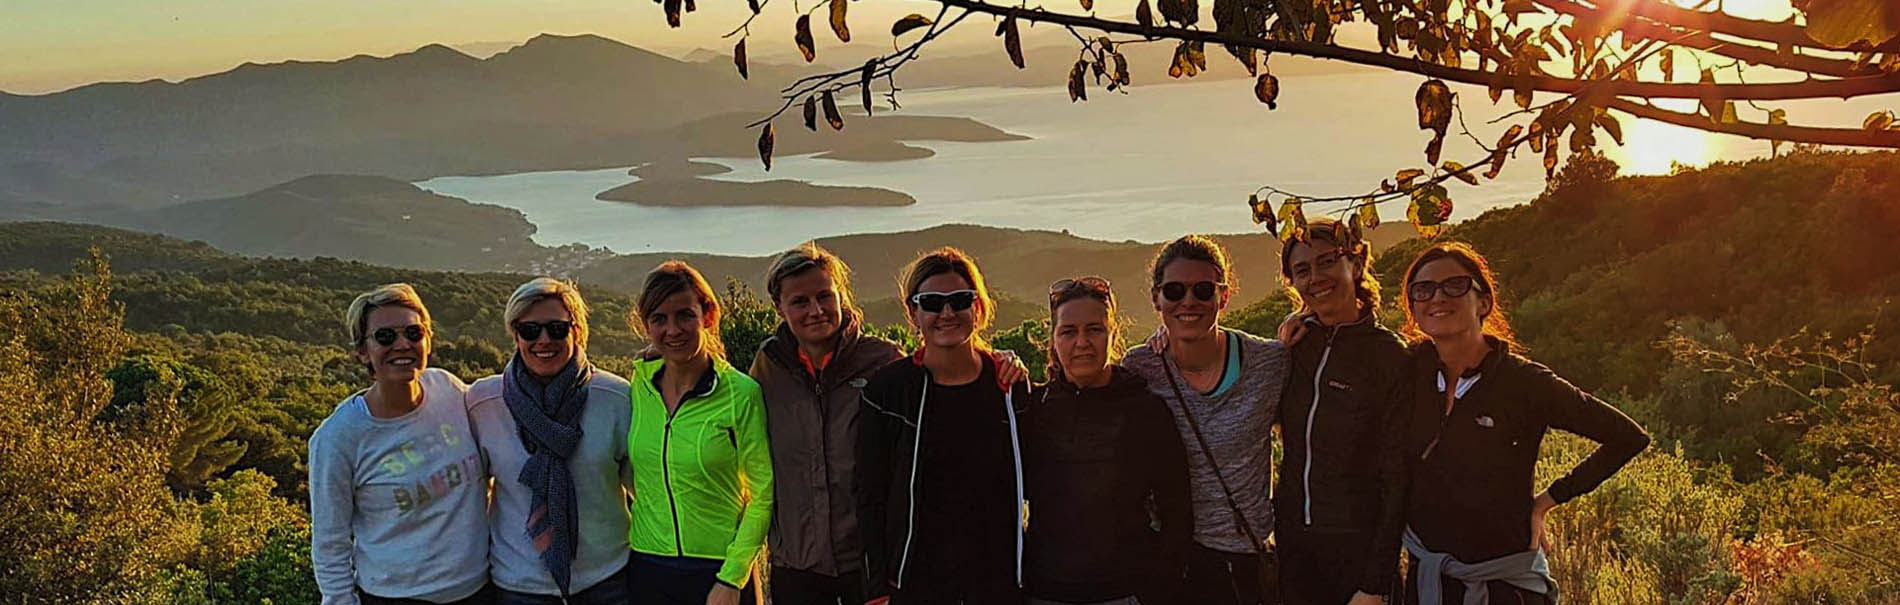 MTB bike & cycling tours for groups on Pelion, Pilio, Greece